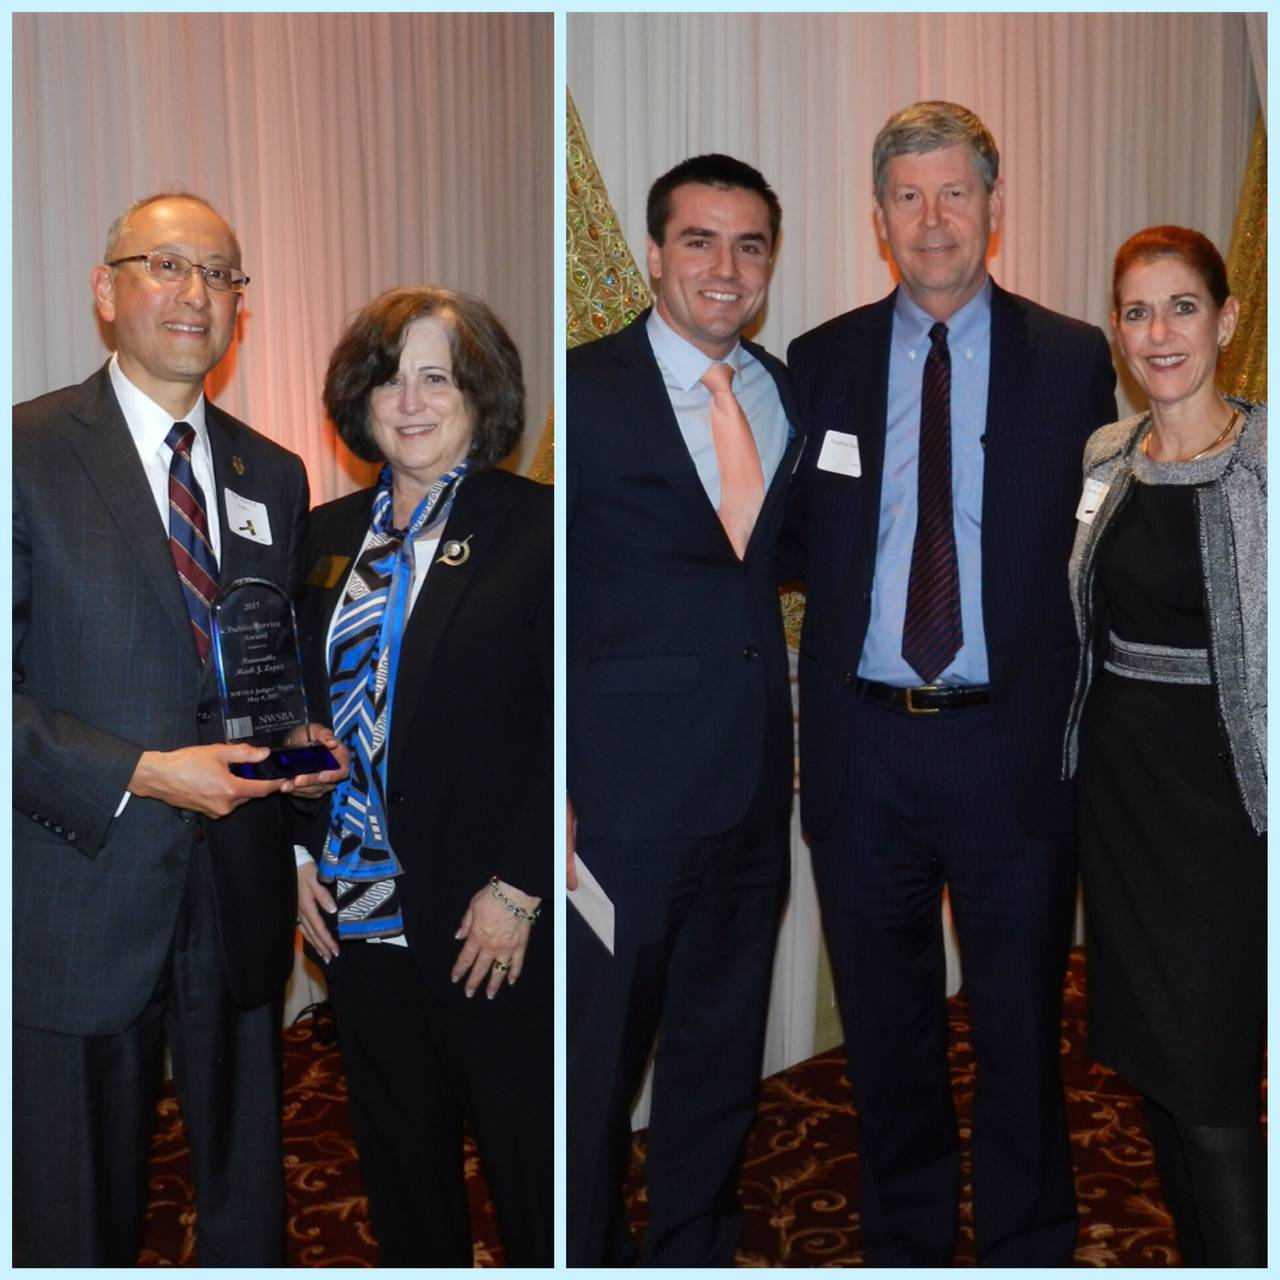 (left) Hon. Mark J. Lopez, Associate Judge, Circuit Court of Cook County receiving the NWSBA 2017 Public Service Award; Miriam Cooper, NWSBA Treasurer: (right) Michael Johnson, Recipient of the 2017 Timothy C. Evans Law School scholarship; Stephen Daday, President, NWSBA Foundation; Hon. Shelley Sutker-Dermer, Presiding Judge, Second District, Circuit Court of Cook County.Paula K. Krueger